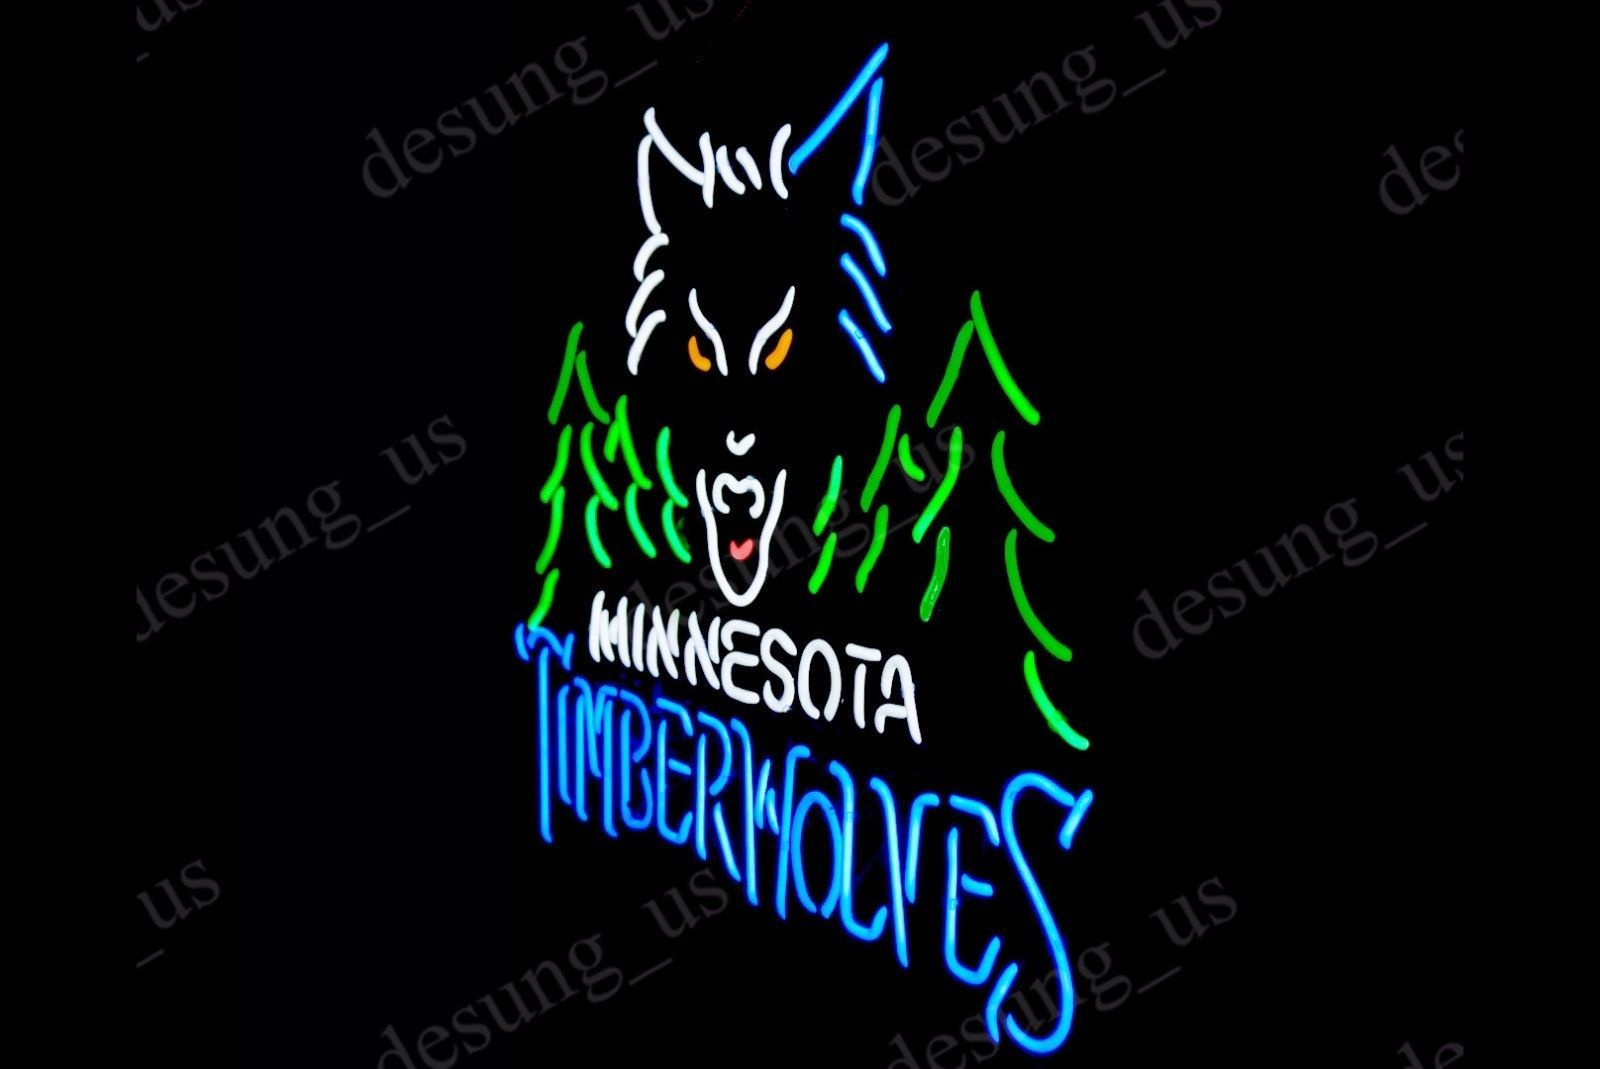 "New Minnesota Timber Wolves Logo Neon Sign 24""x20"" Ship From USA"